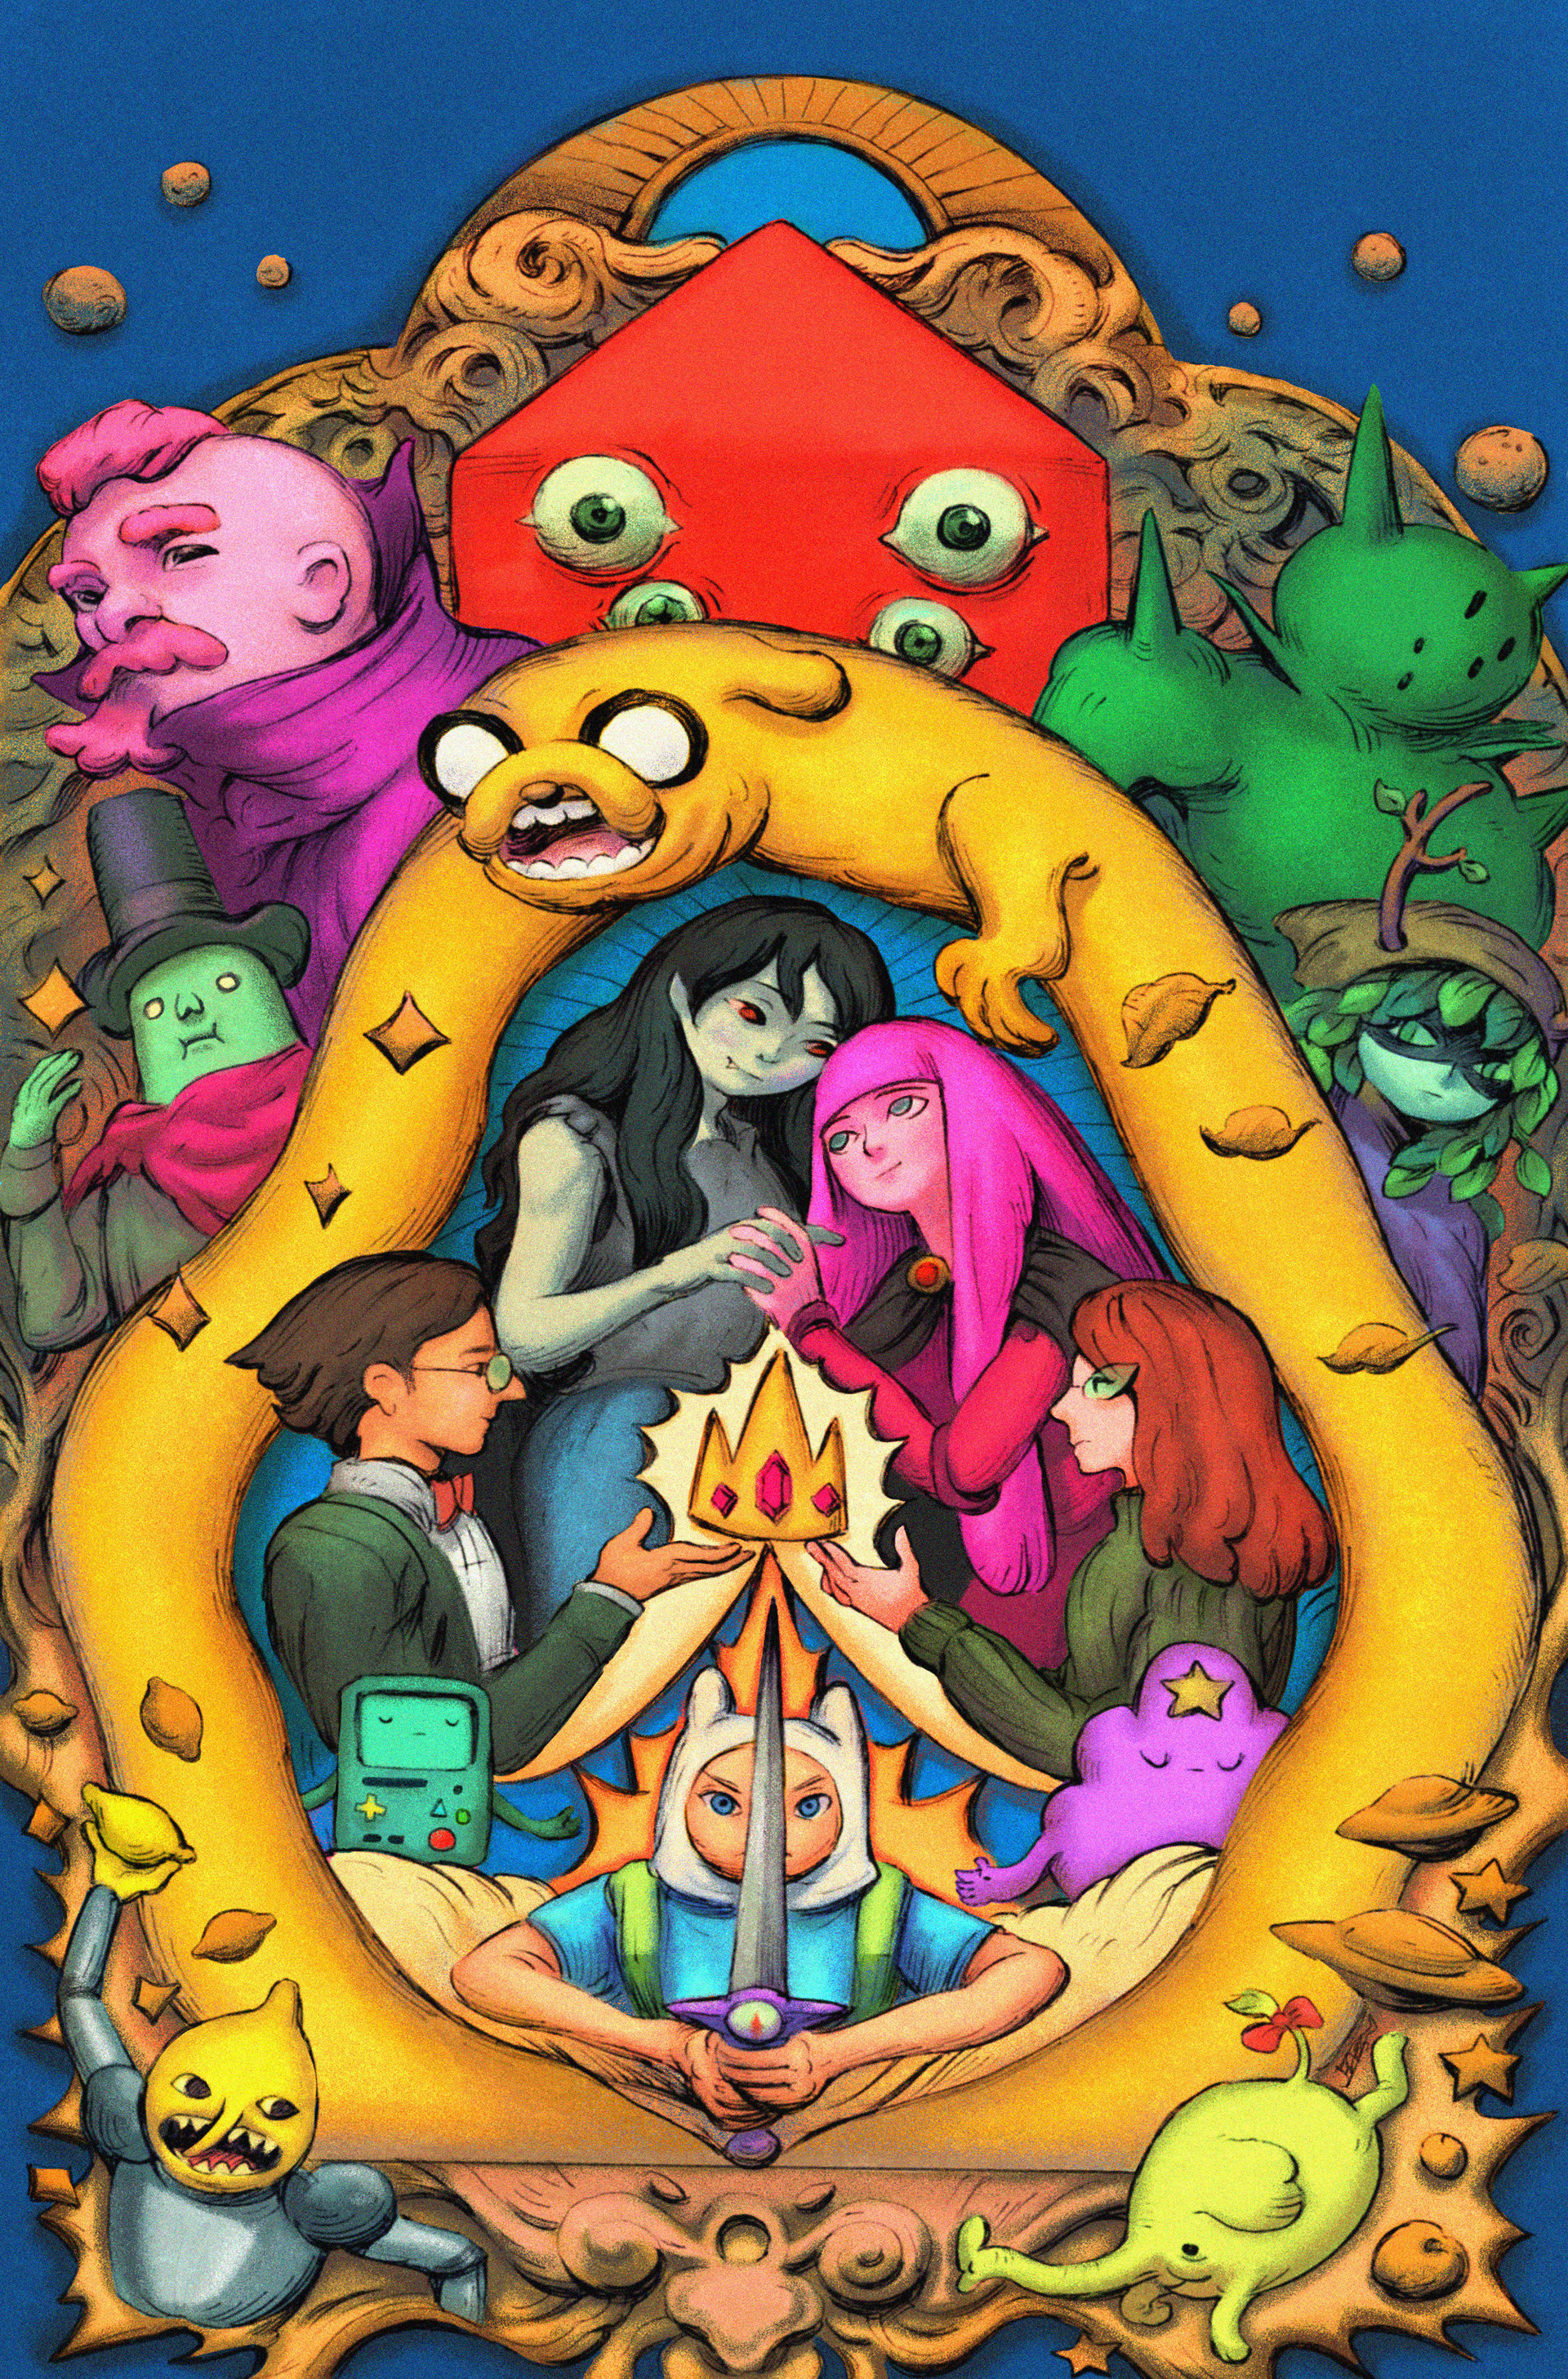 Adventure_Time_S10_Cover.jpg